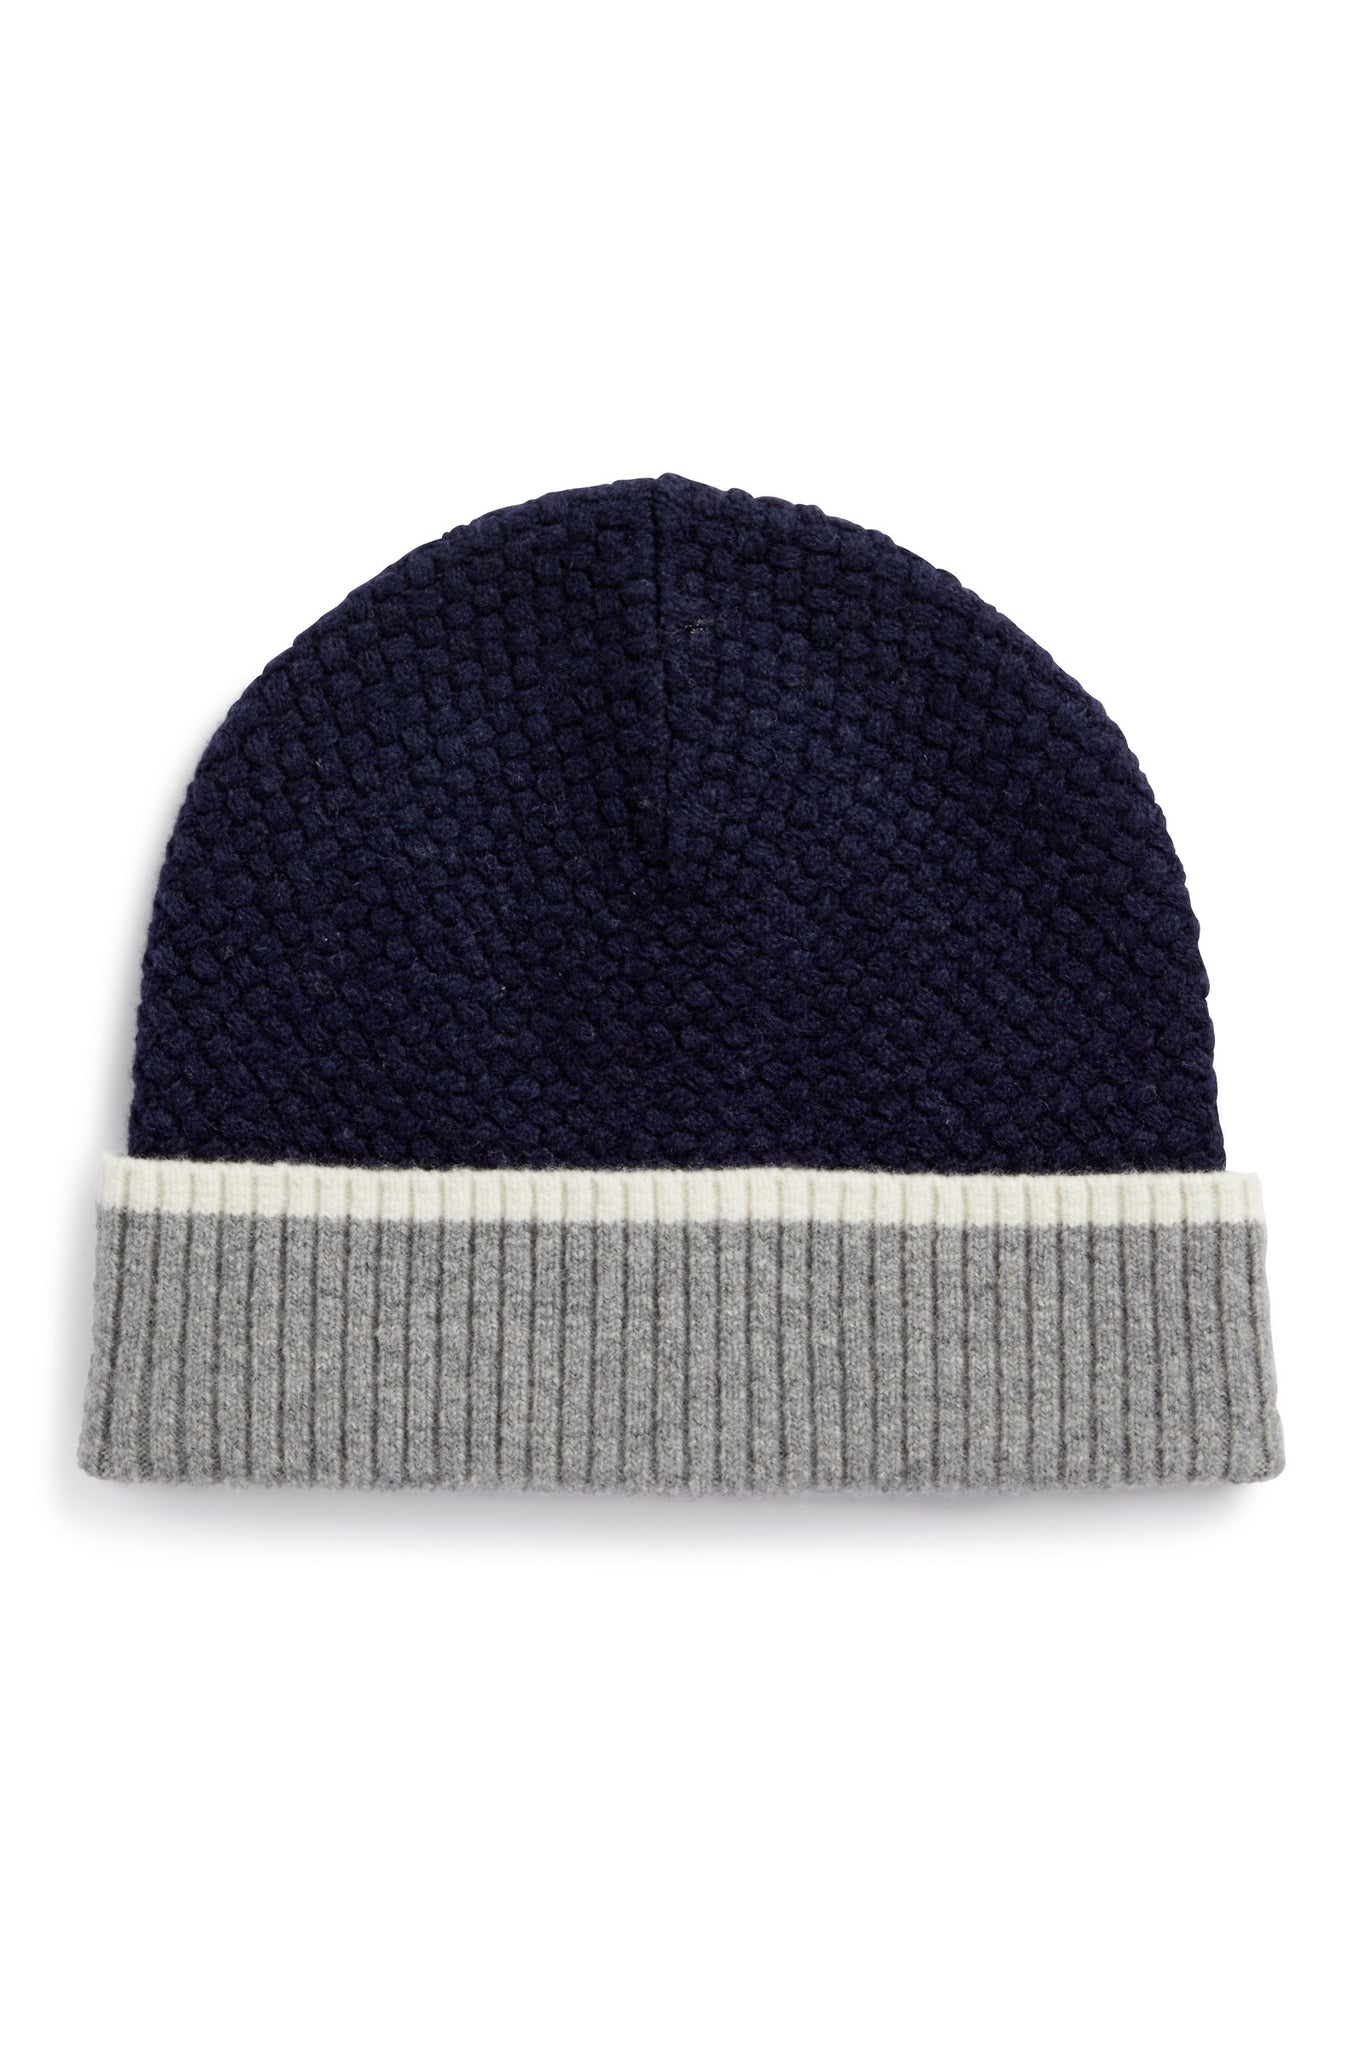 Basketweave Block Beanie